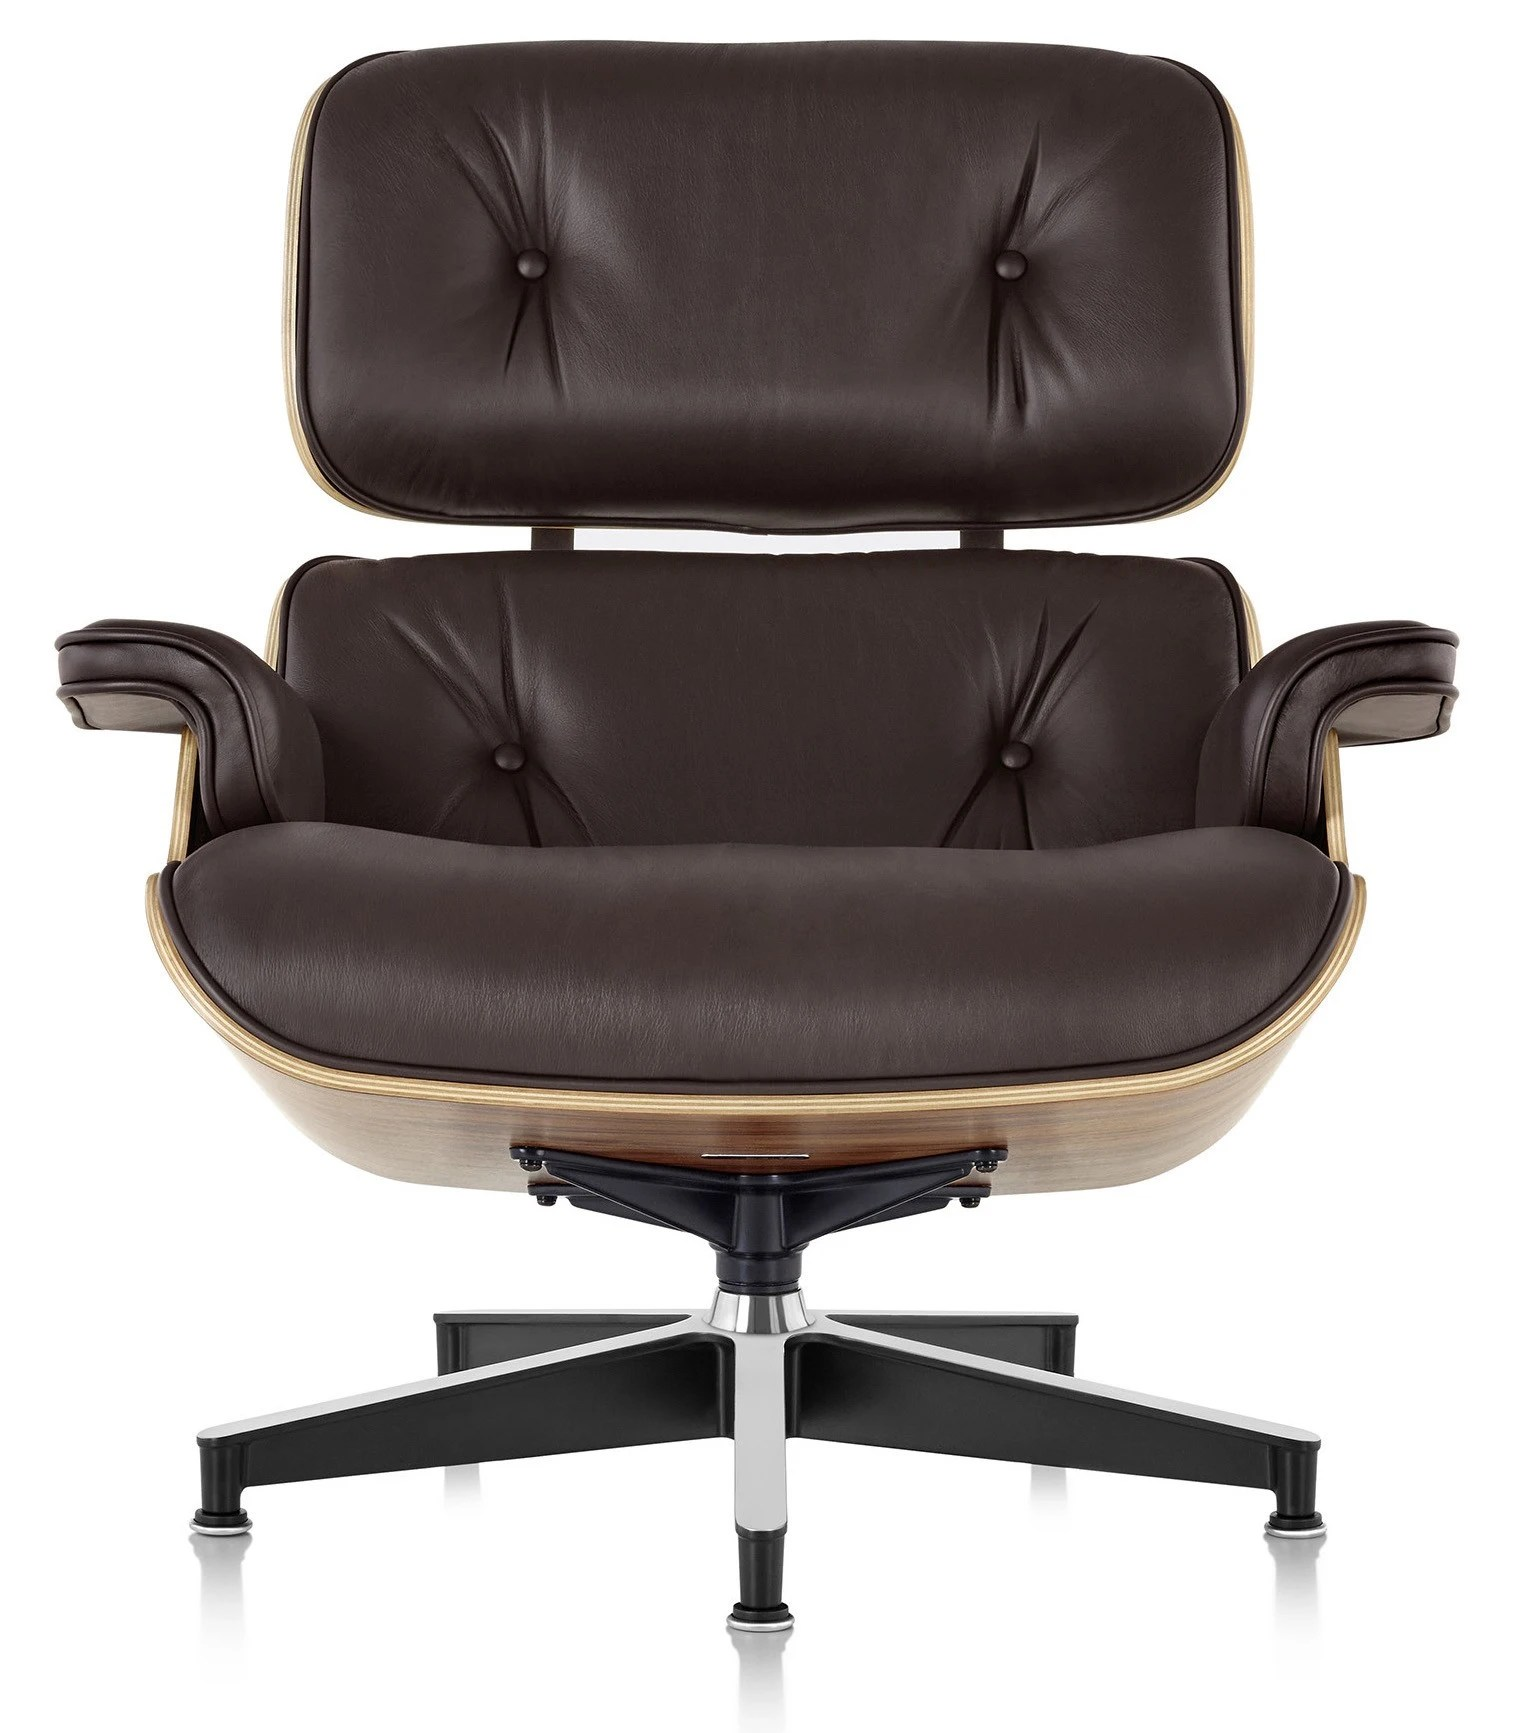 Eames Chairs Qld Herman Miller Eames Lounge Chair Gr Shop Canada